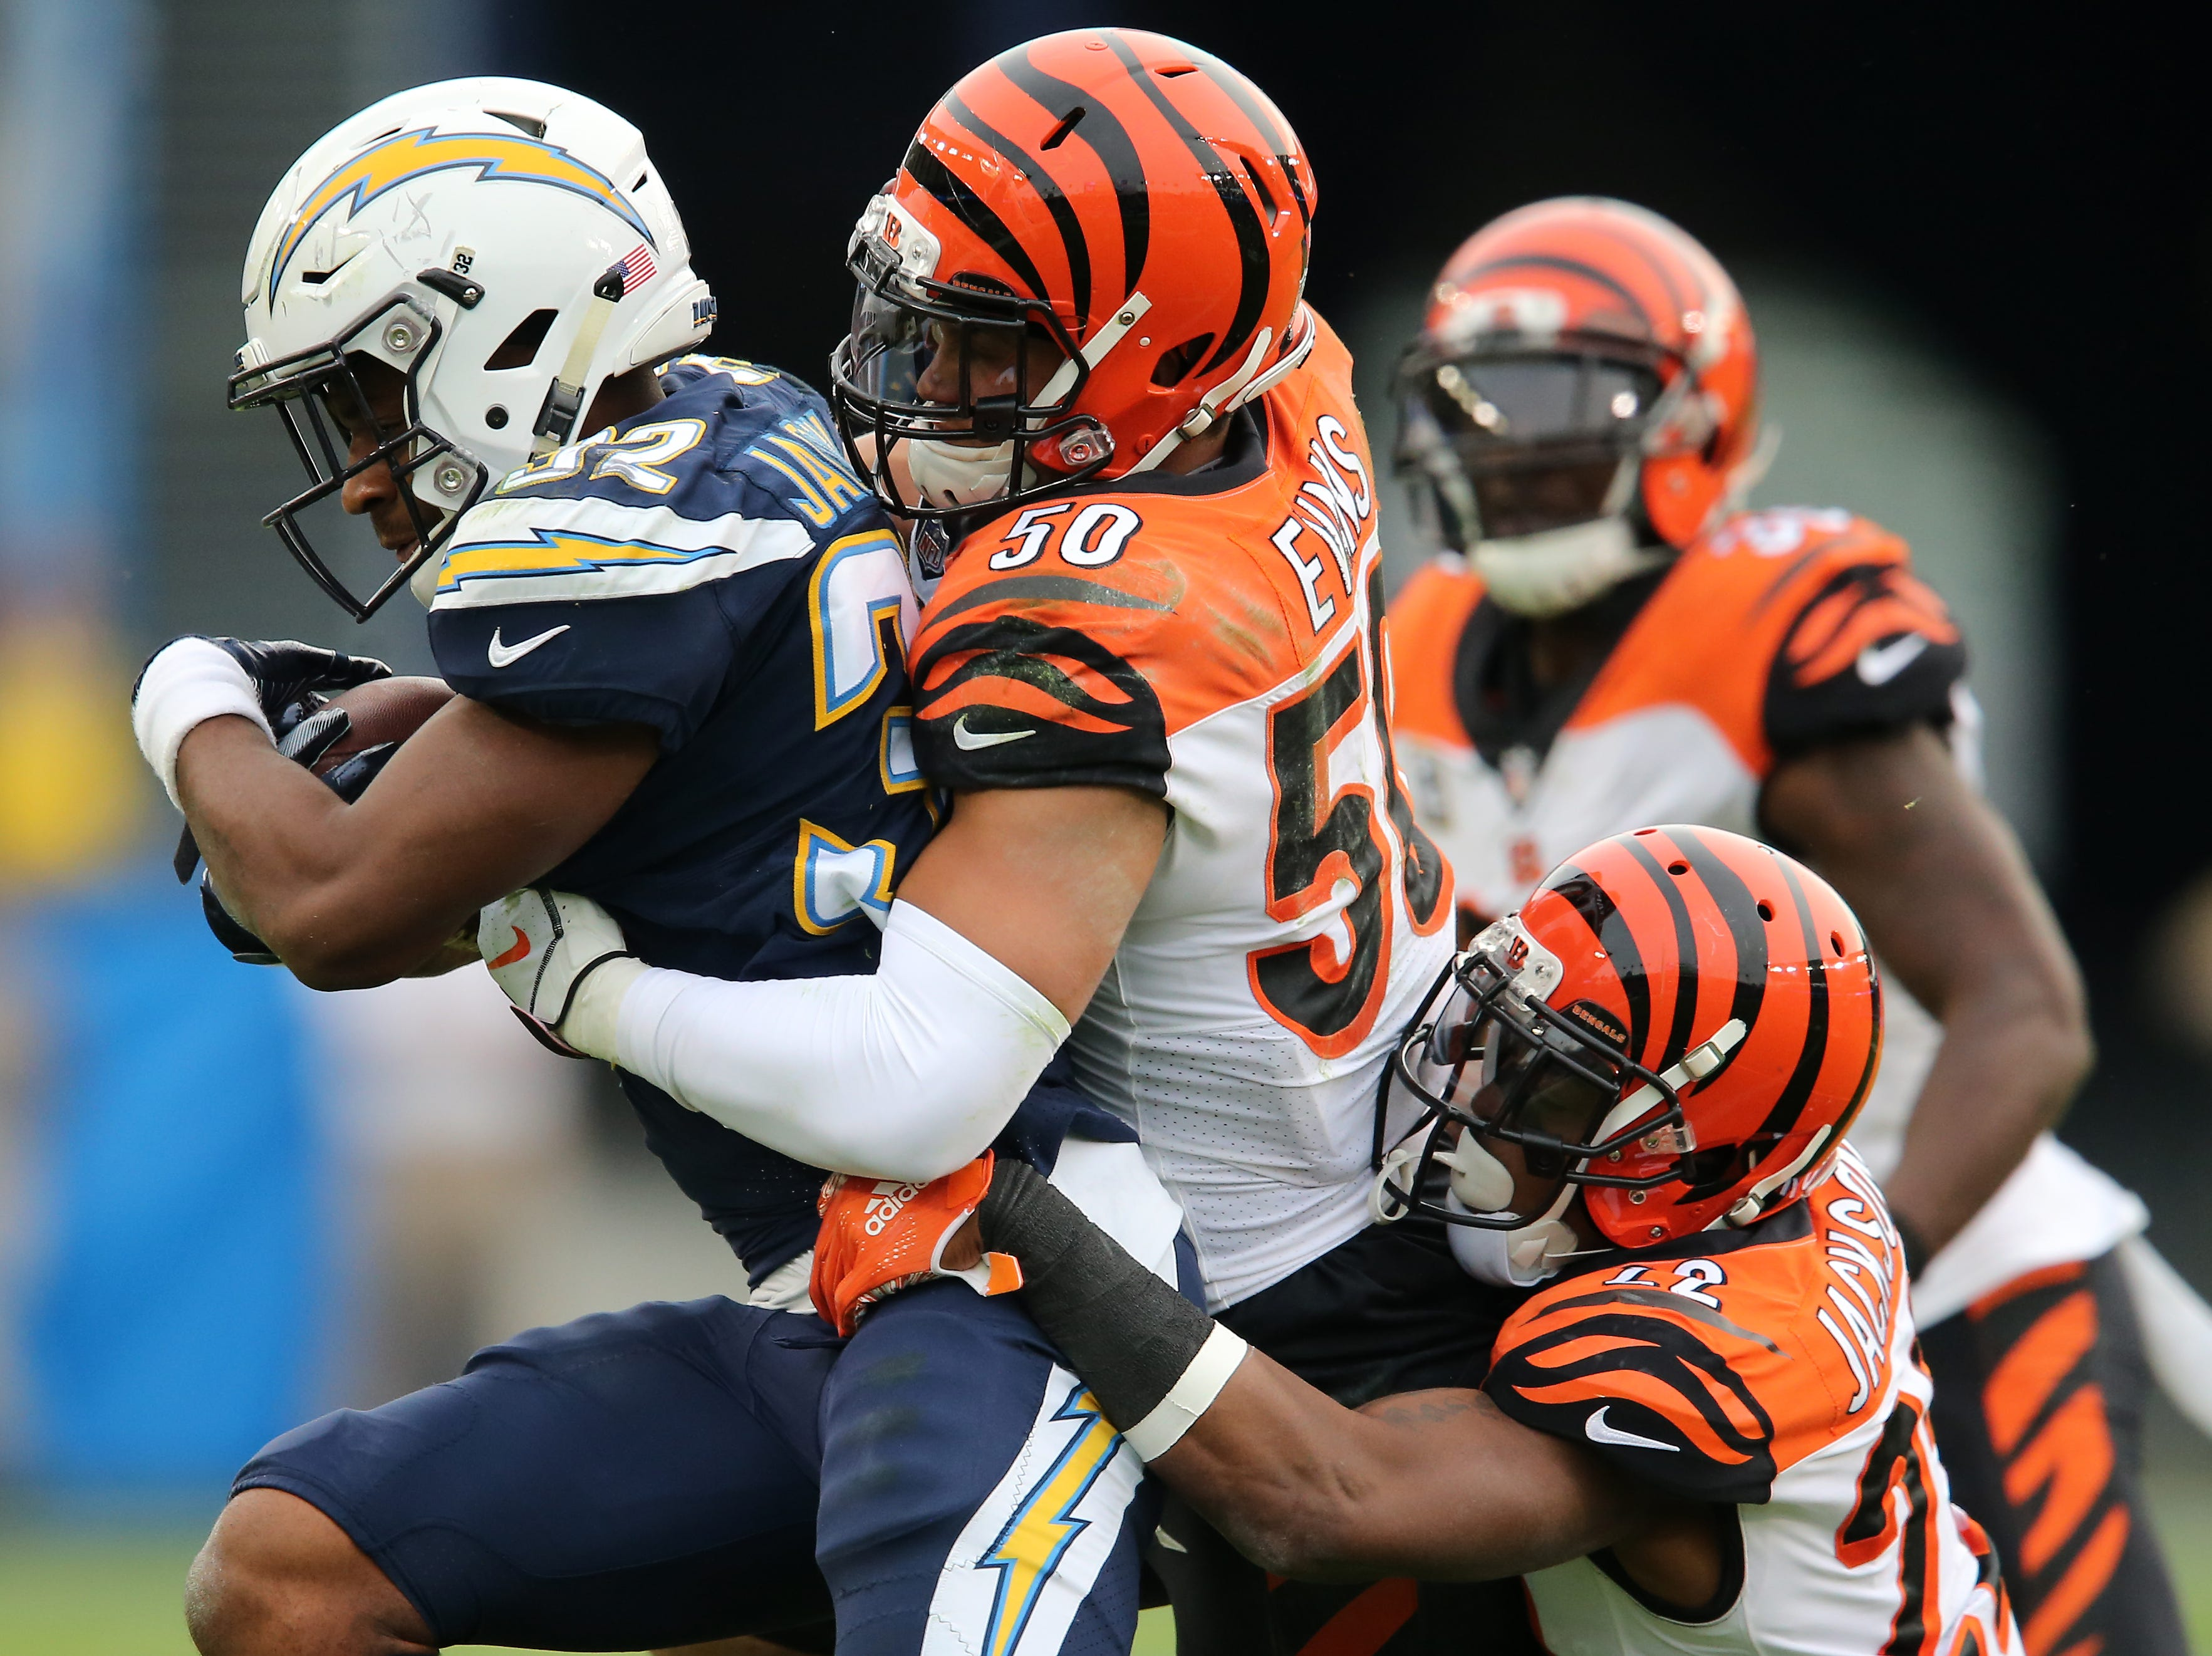 Los Angeles Chargers wide receiver Mike Williams (81) completes a catch as Cincinnati Bengals cornerback William Jackson (22) defends in the third quarter of a Week 14 NFL football game, Sunday, Dec. 9, 2018, at StubHub Center in Carson, California.